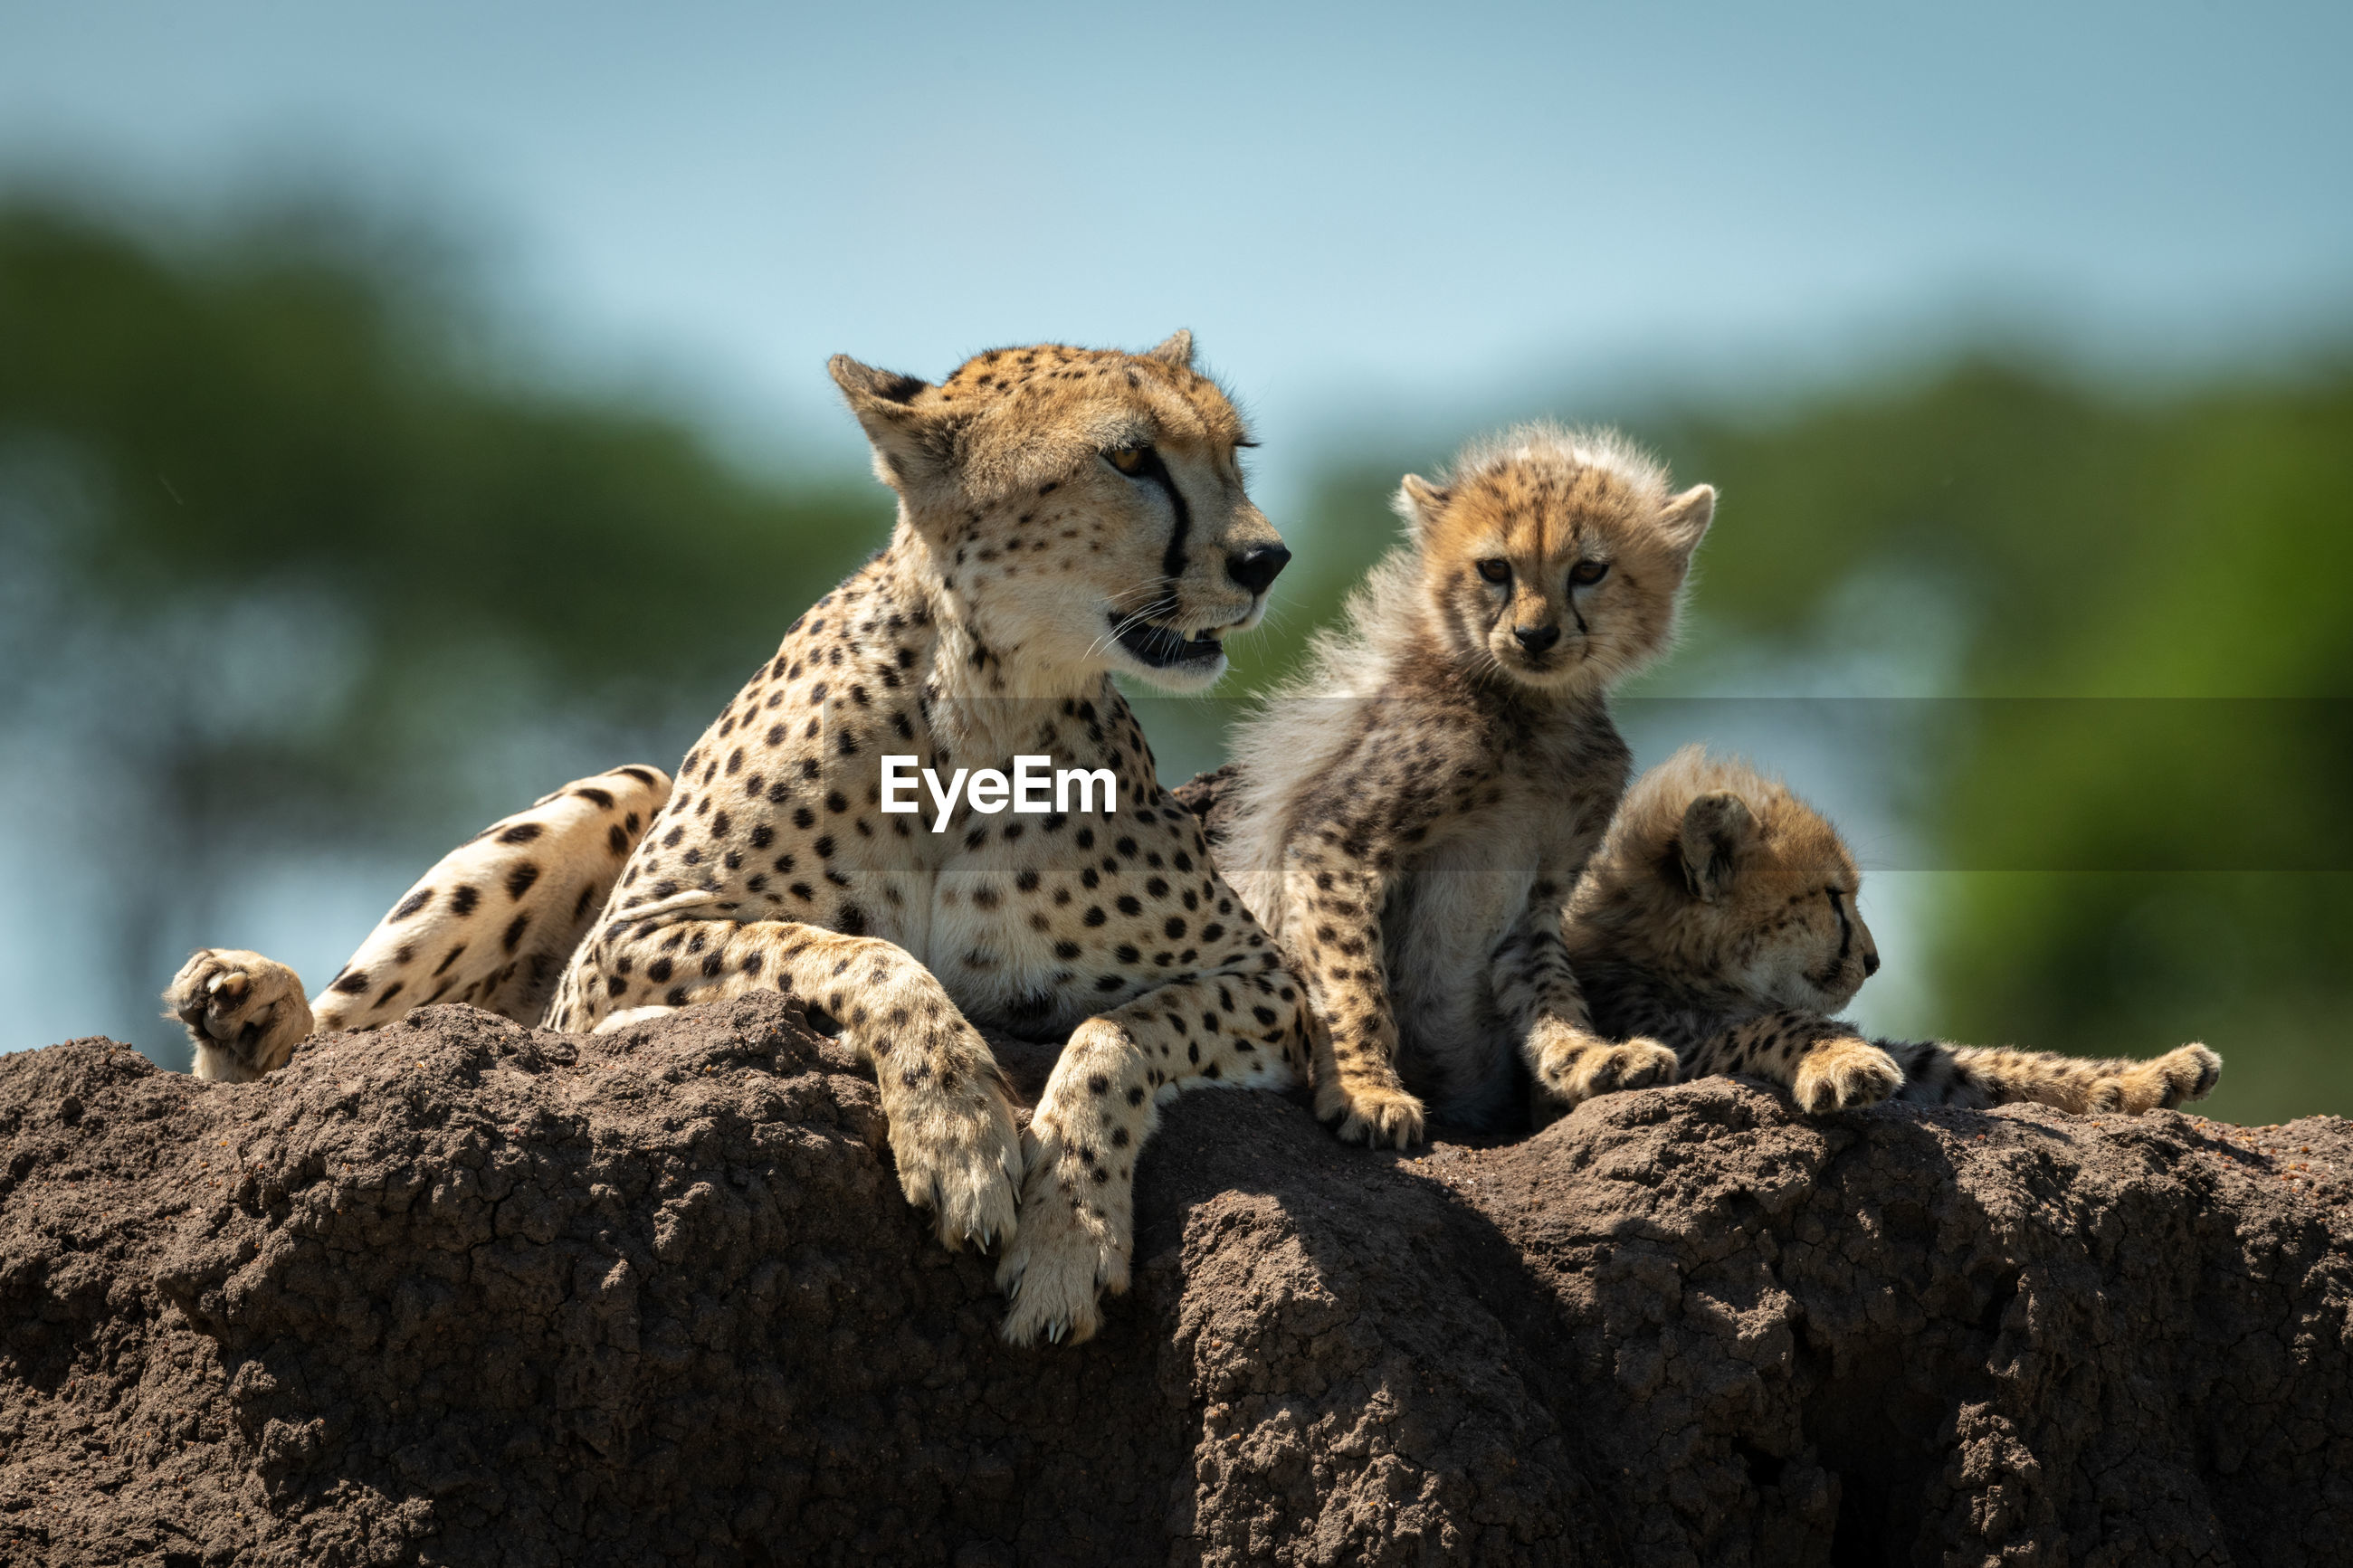 Cheetah family sitting on rock in forest